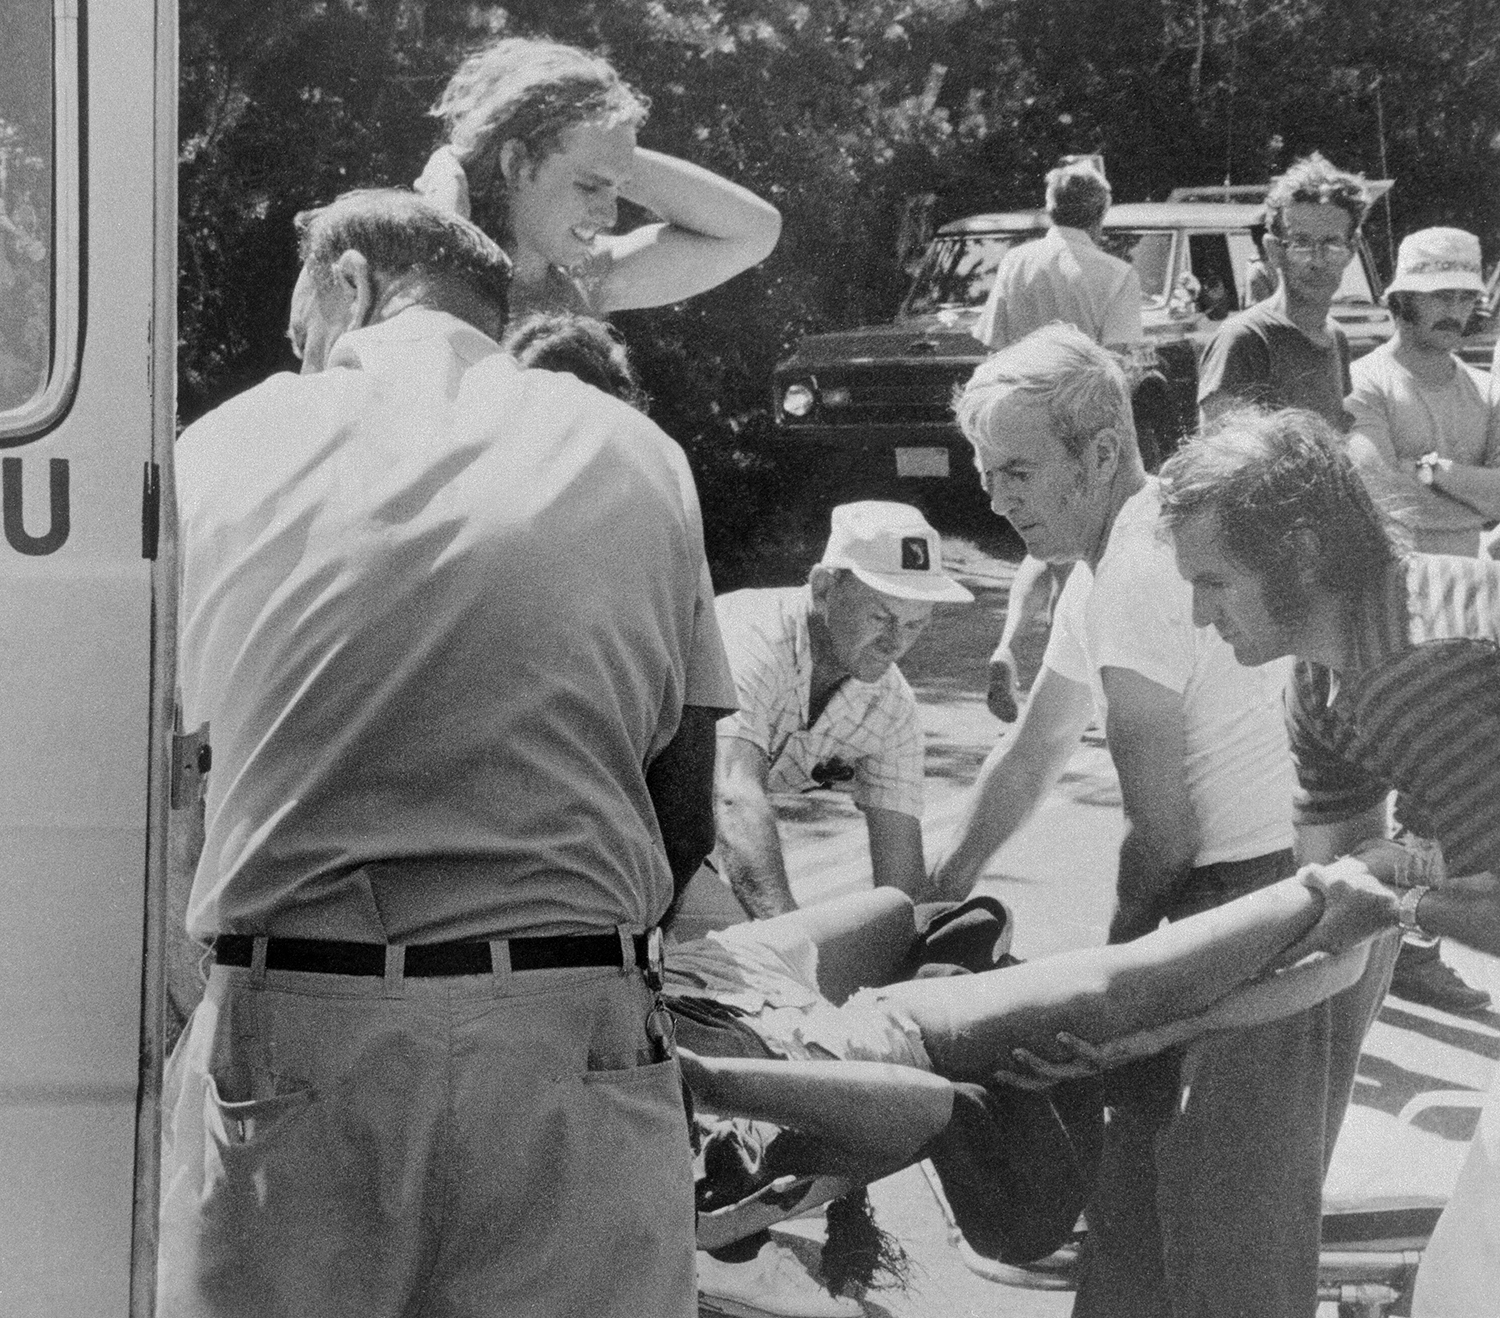 Joseph P. Kennedy III Watching His Brother Being Taken to Hospital